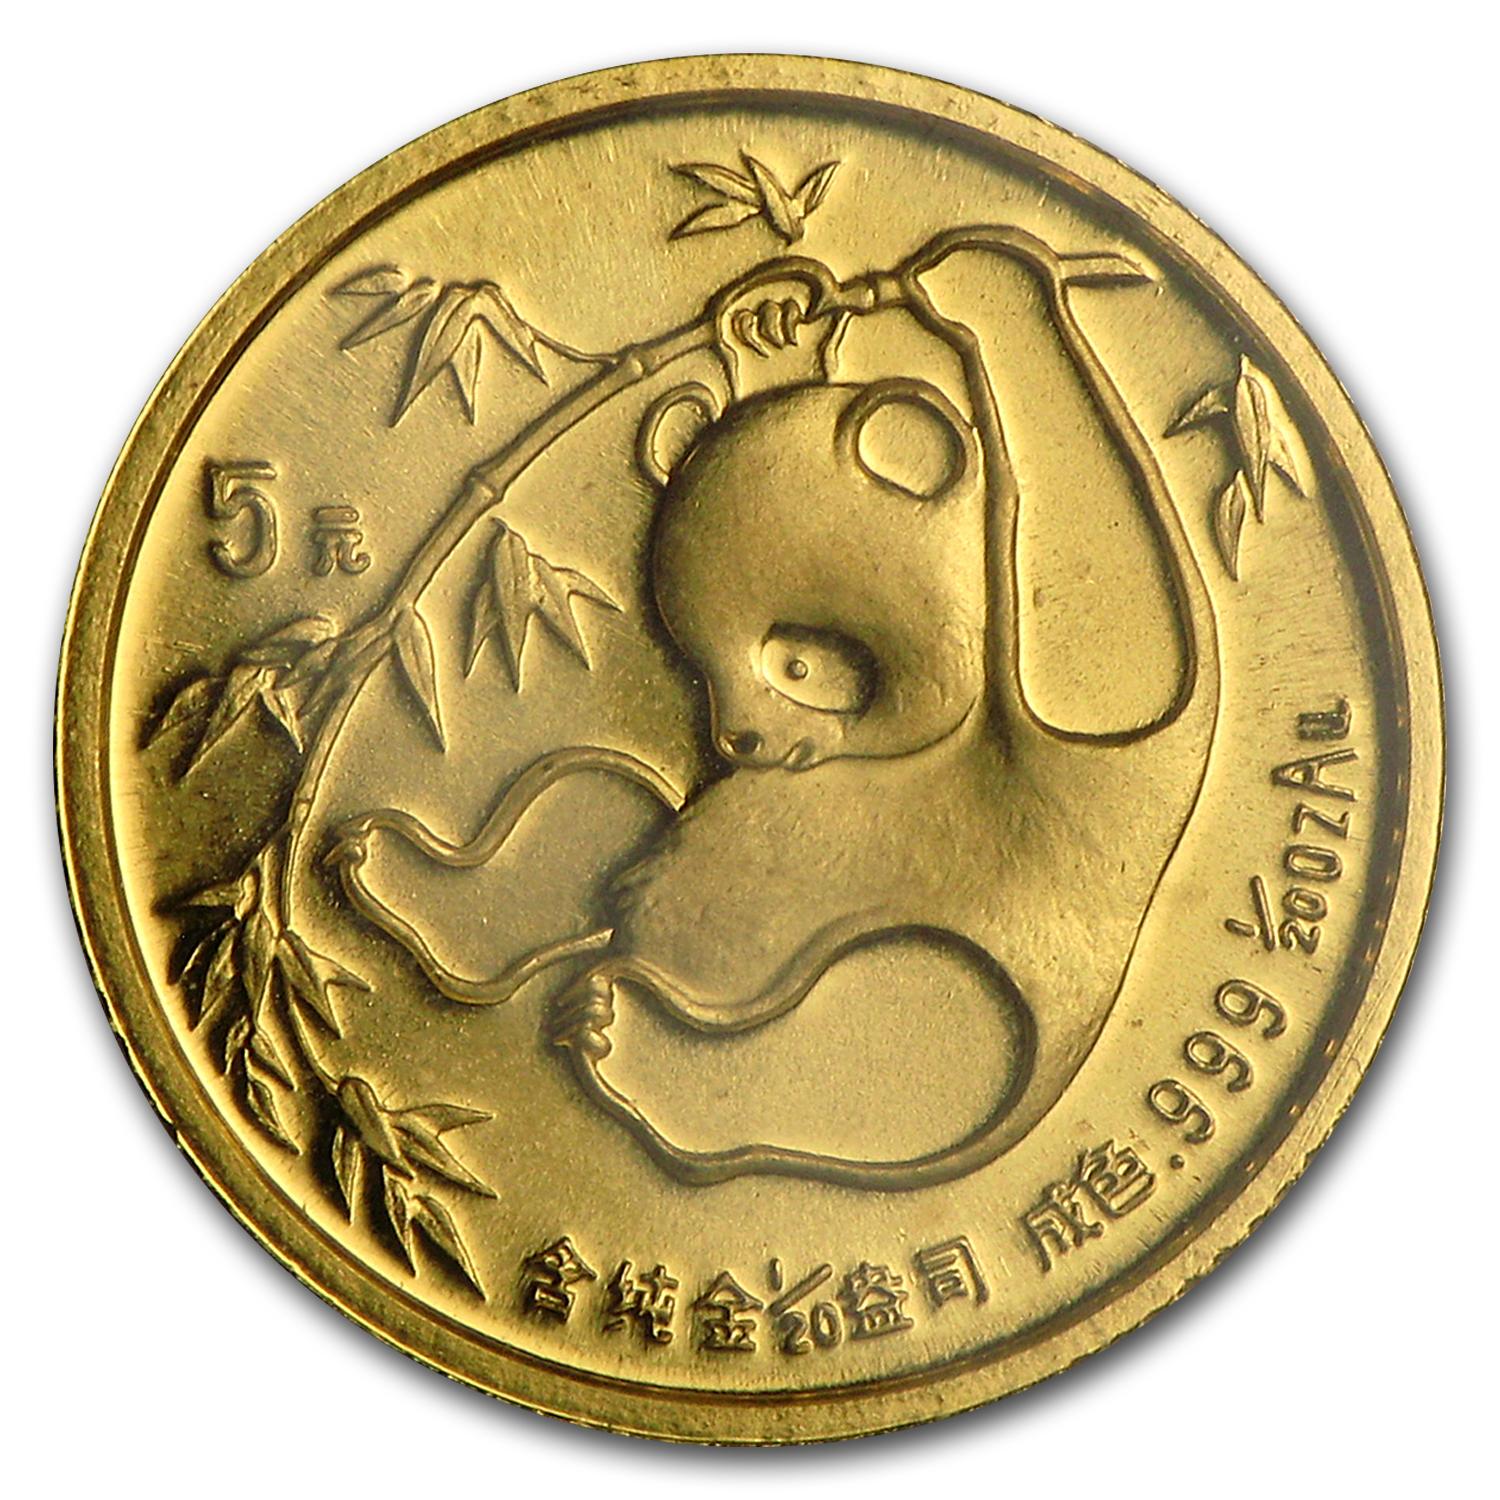 1985 China 1/20 oz Gold Panda BU (Sealed)